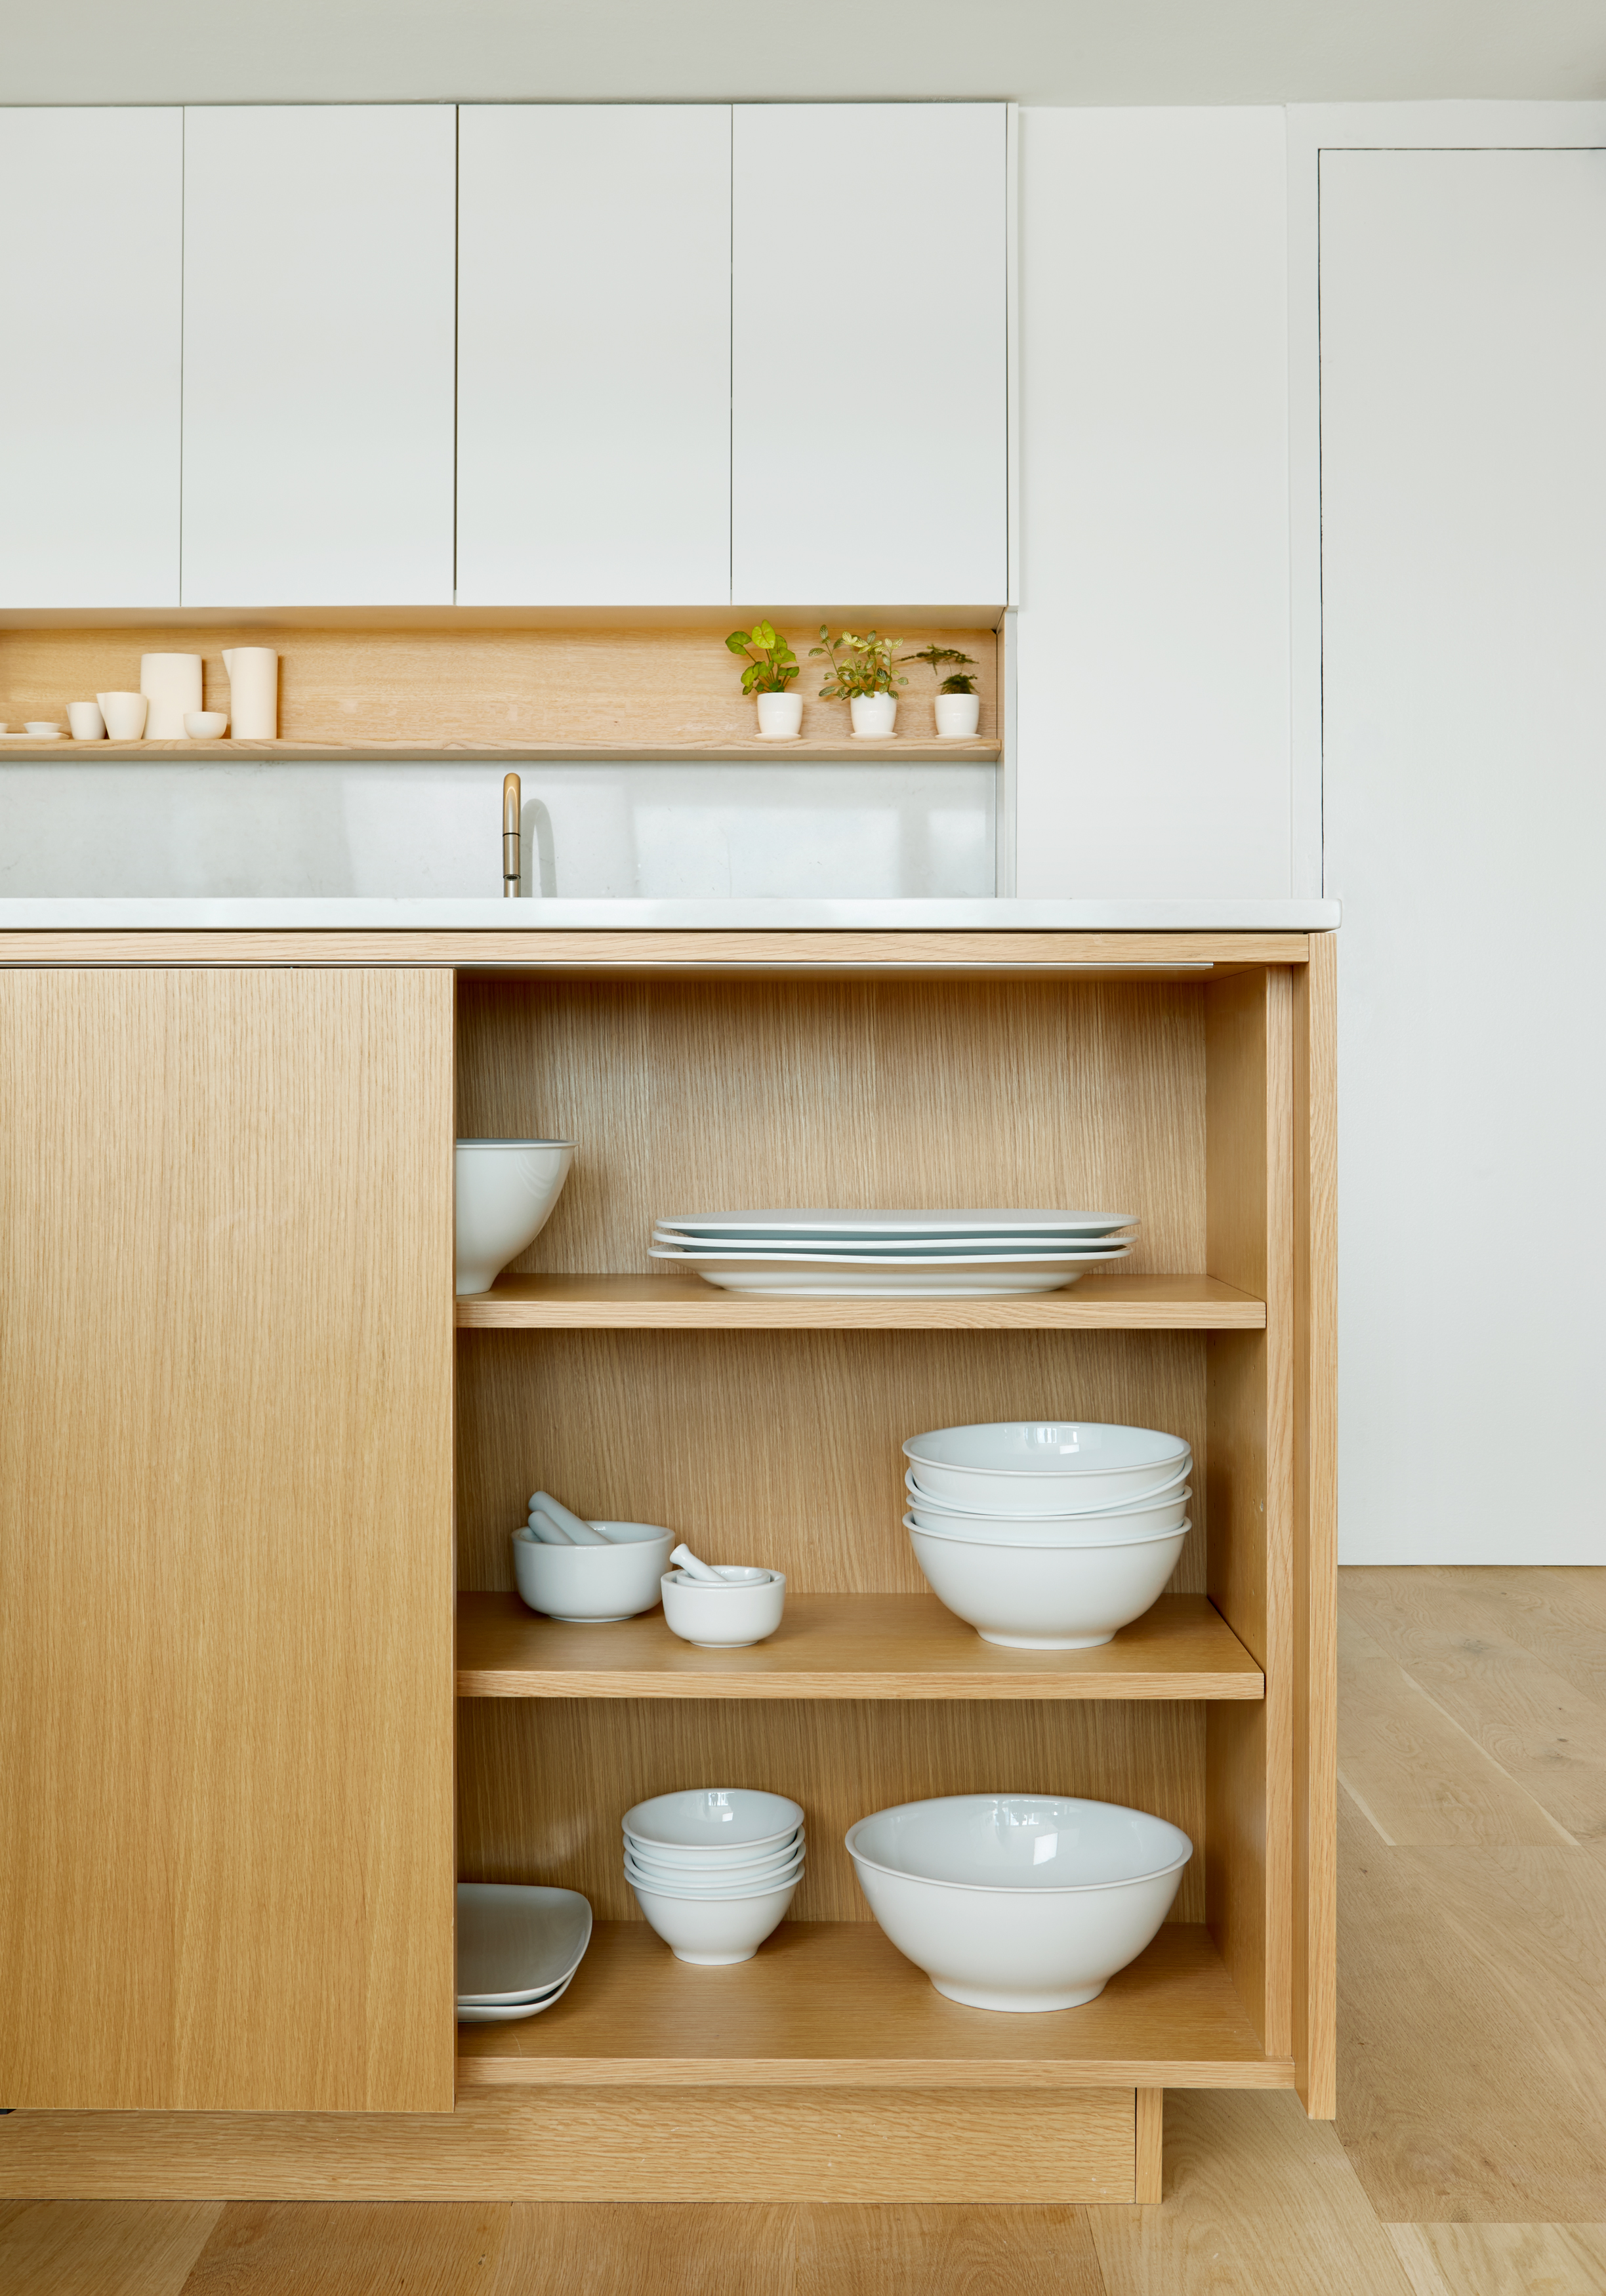 White / Oak Kitchen Storage - Apartment Renovation, Chicago